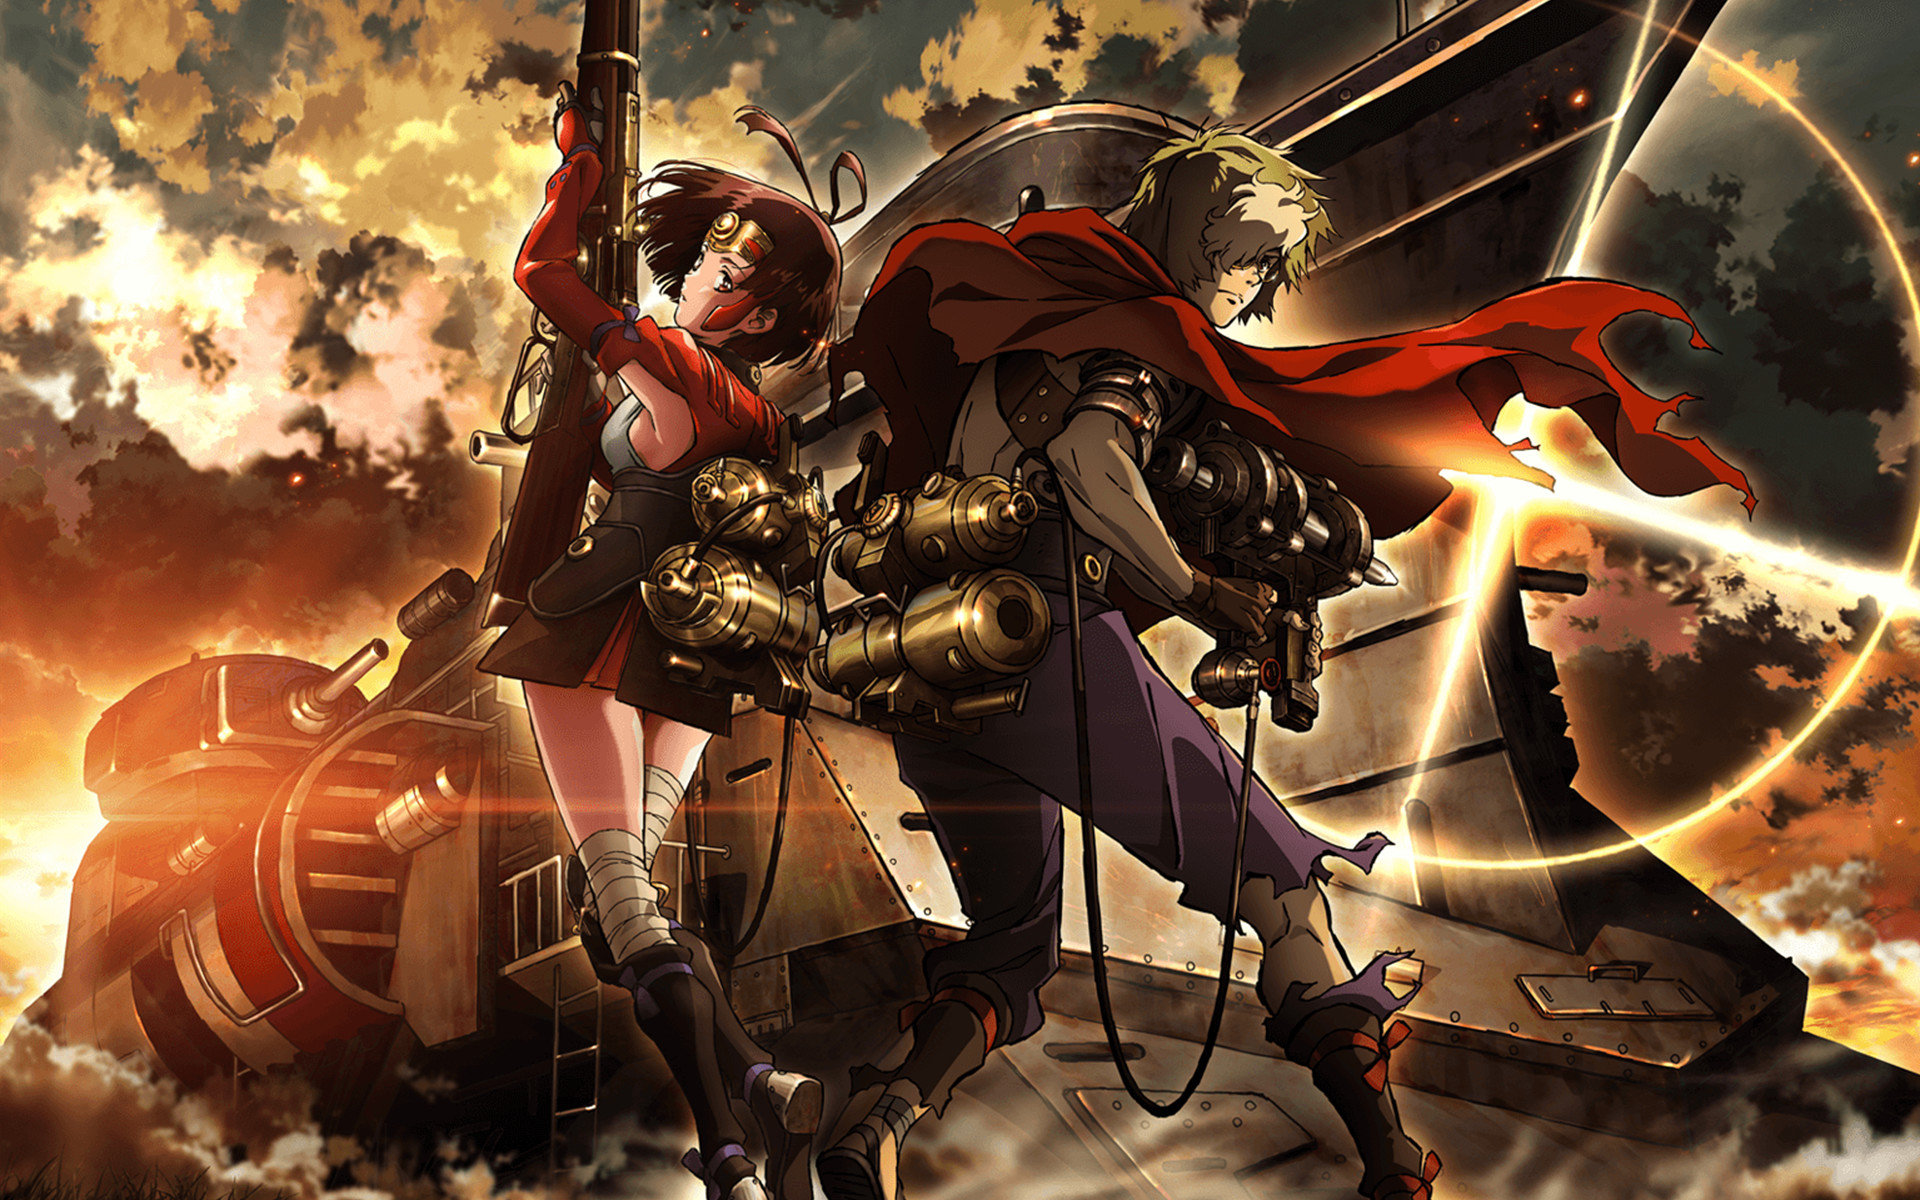 High resolution Kabaneri Of The Iron Fortress hd 1920x1200 wallpaper ID:116859 for computer